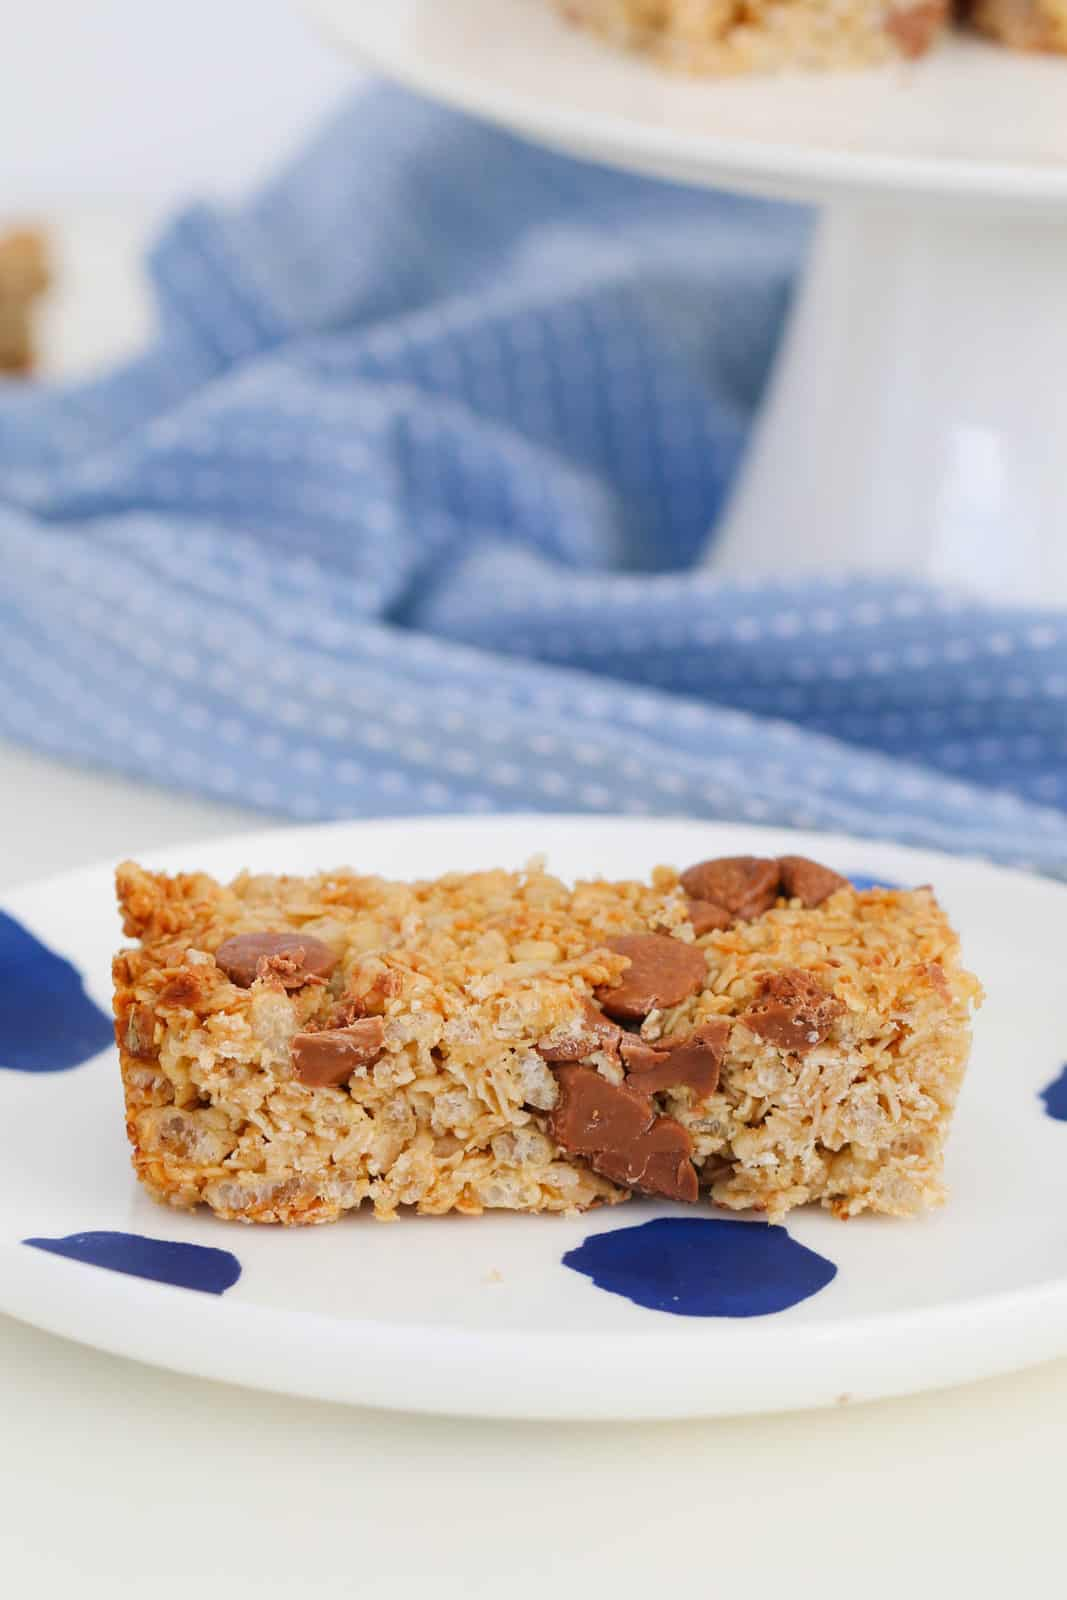 A chocolate chip granola bar on a white and blue plate